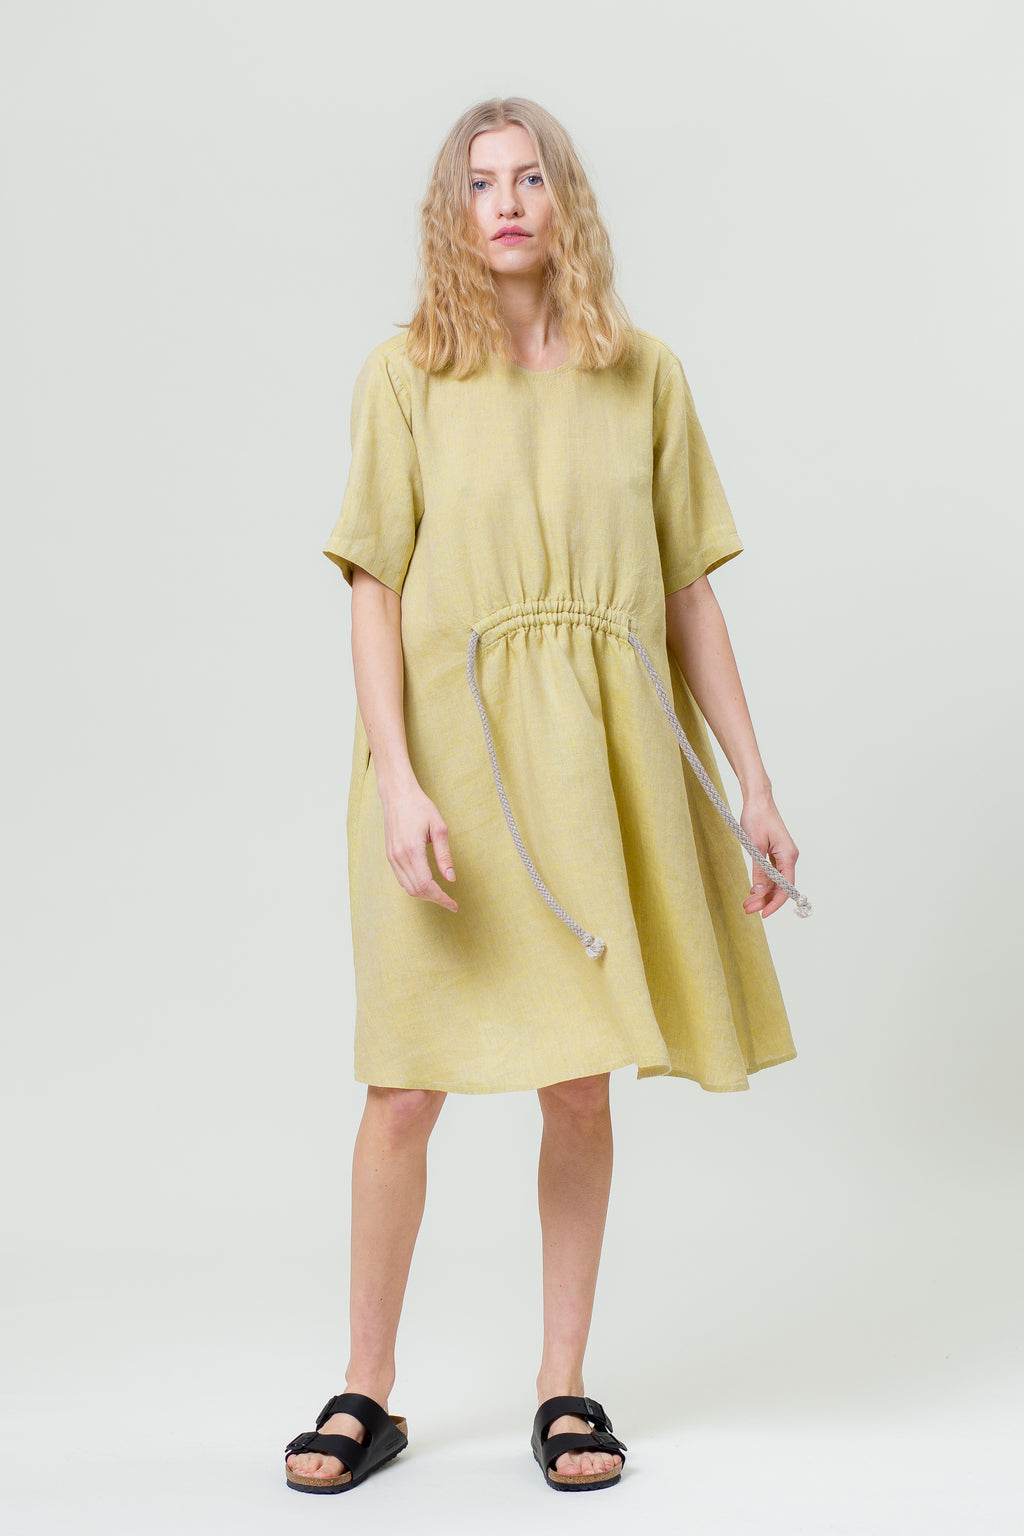 Linen Dress JURGA mimosa